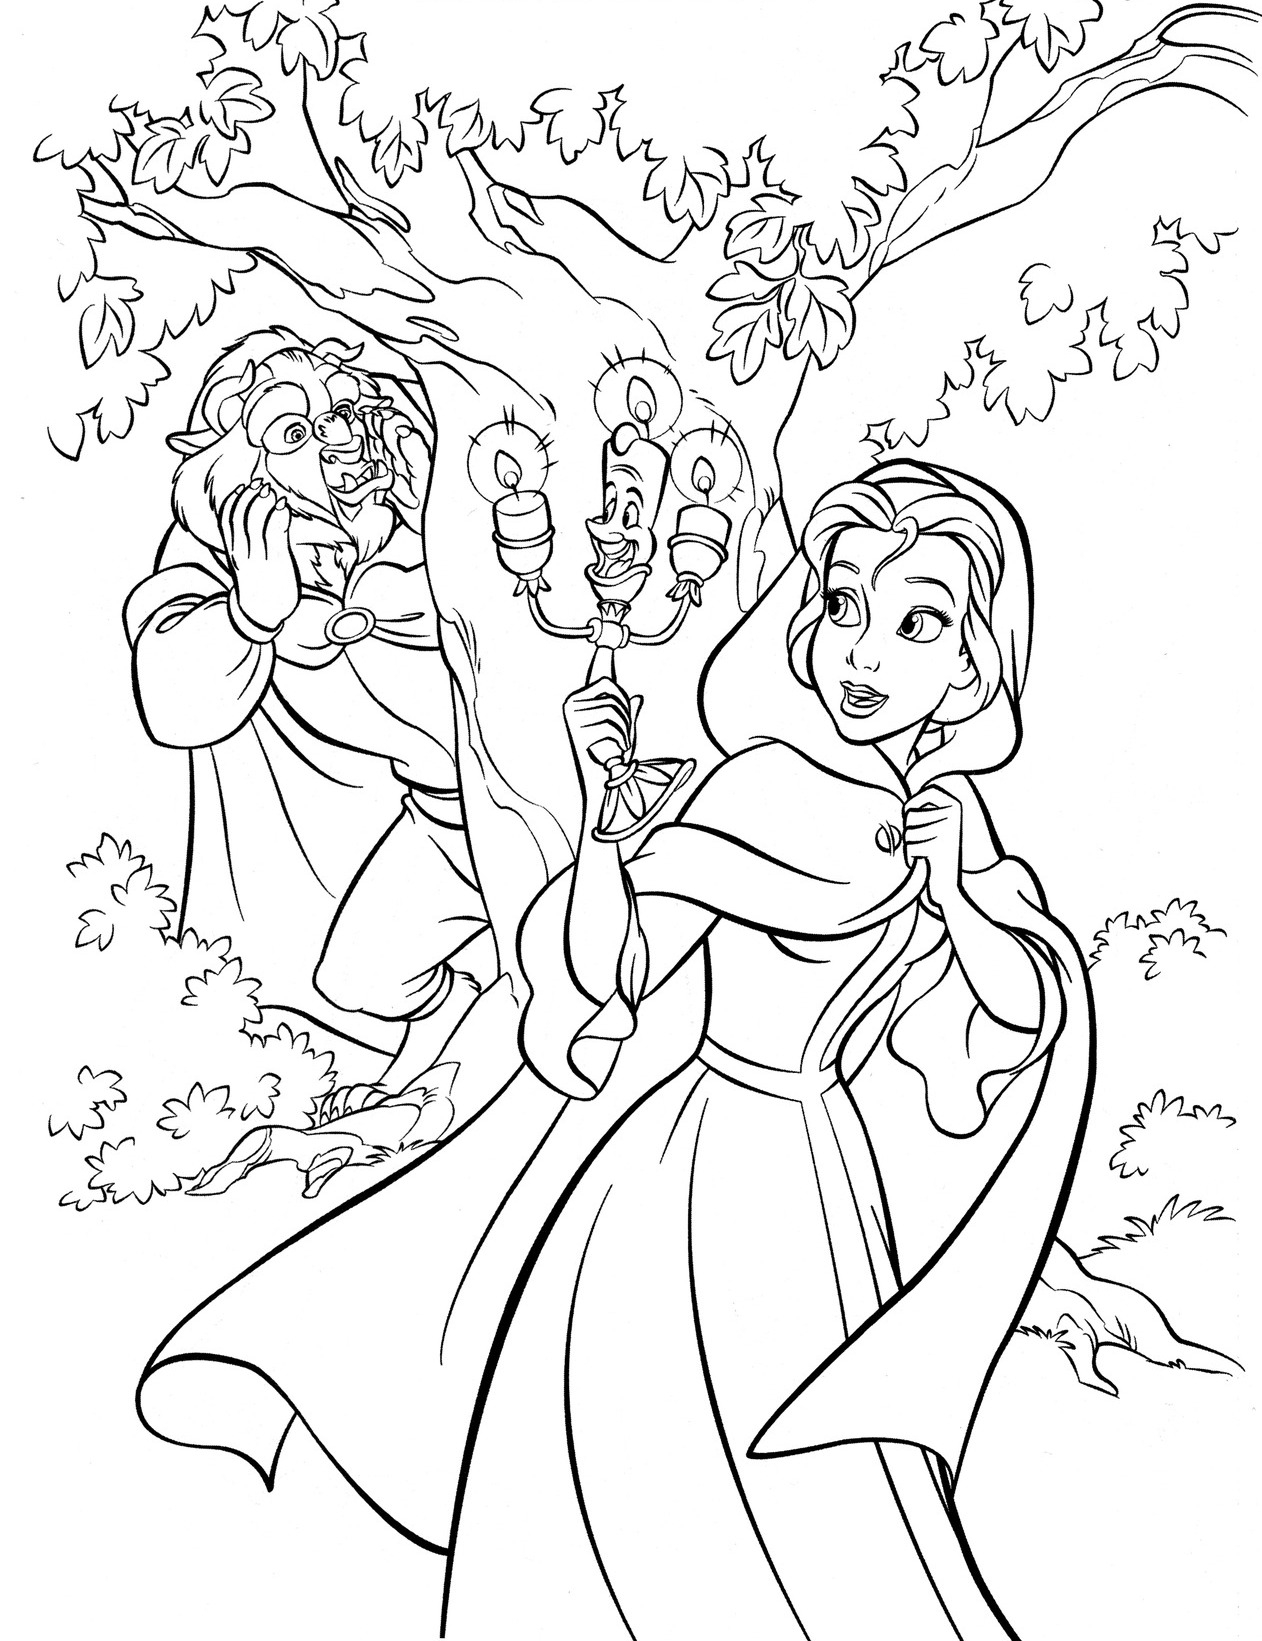 Beauty and the Beast Coloring Pages - Walt Disney Cute Kawaii Resources